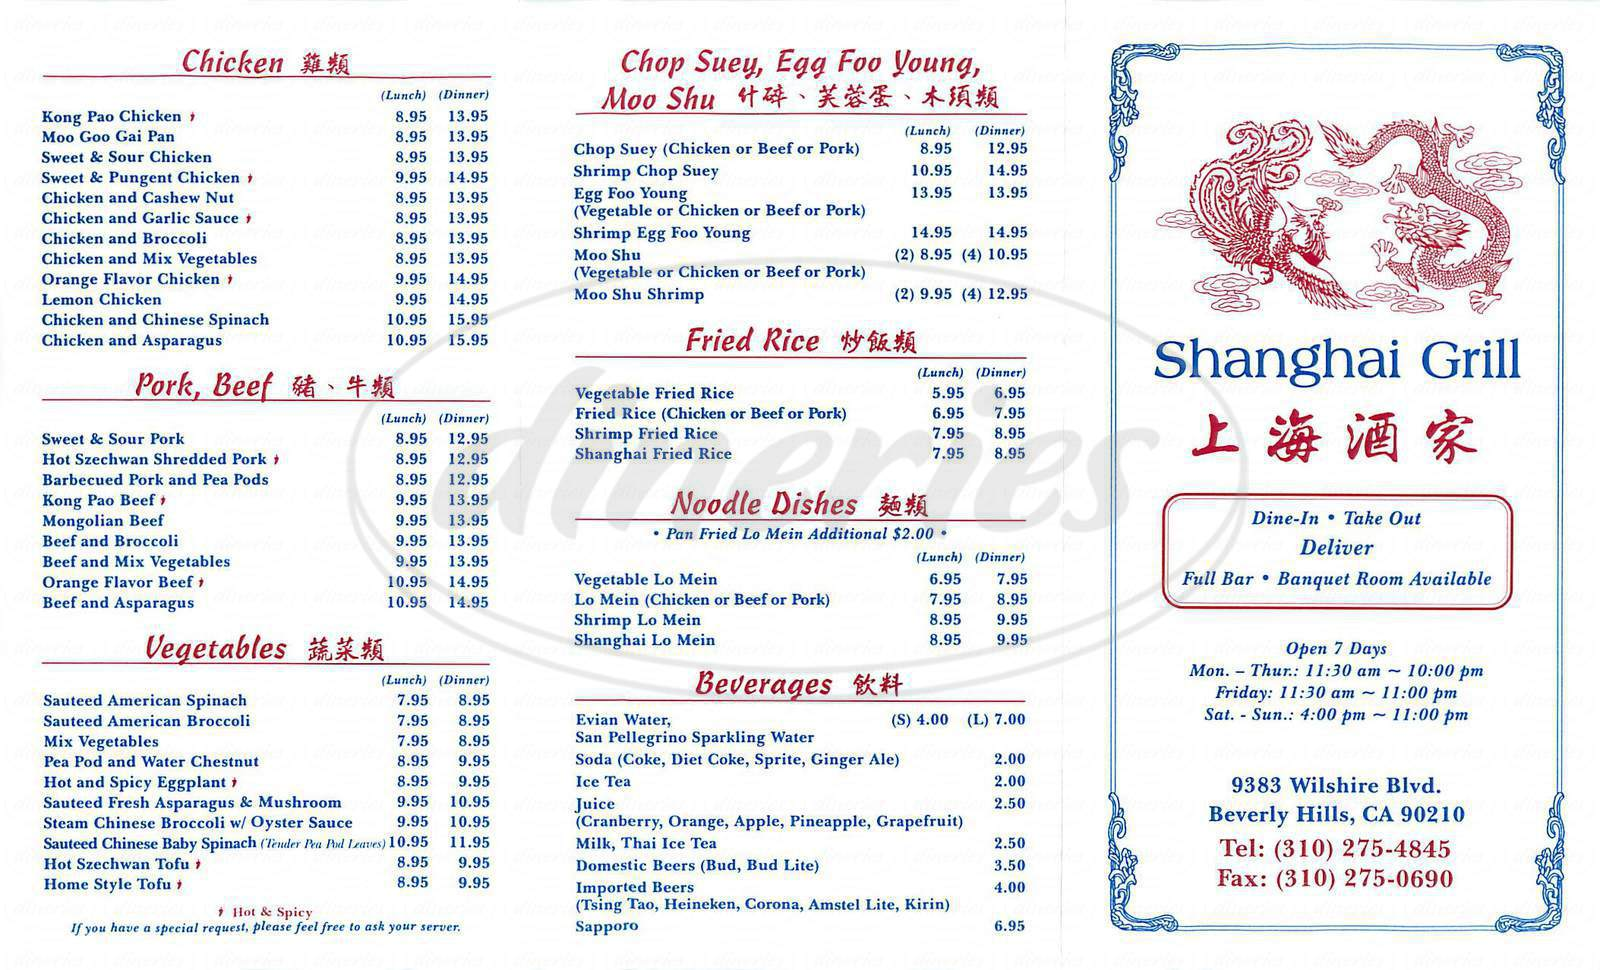 menu for Shanghai Grill